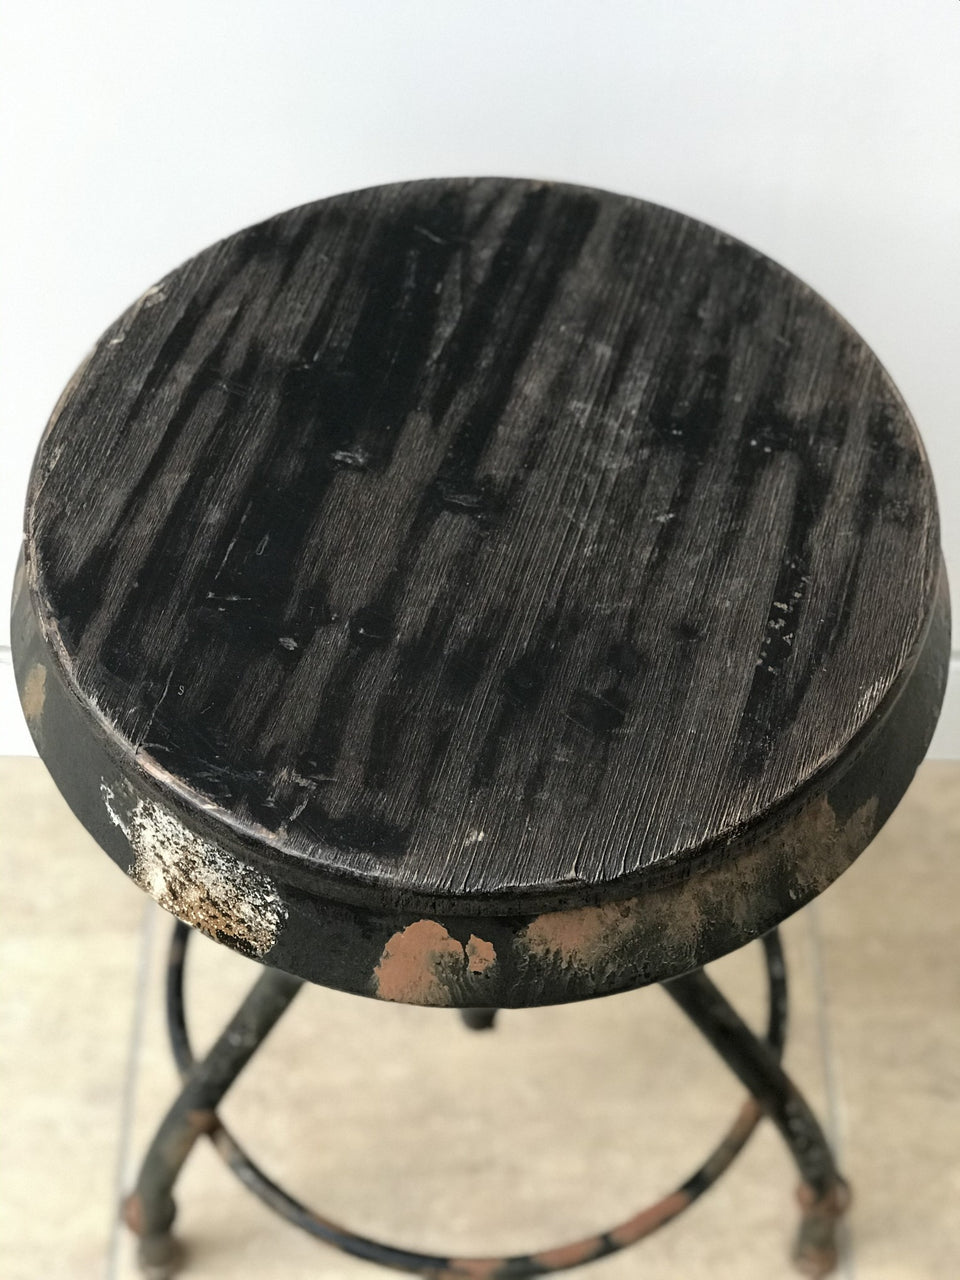 adjustable industrial stool with wooden seat